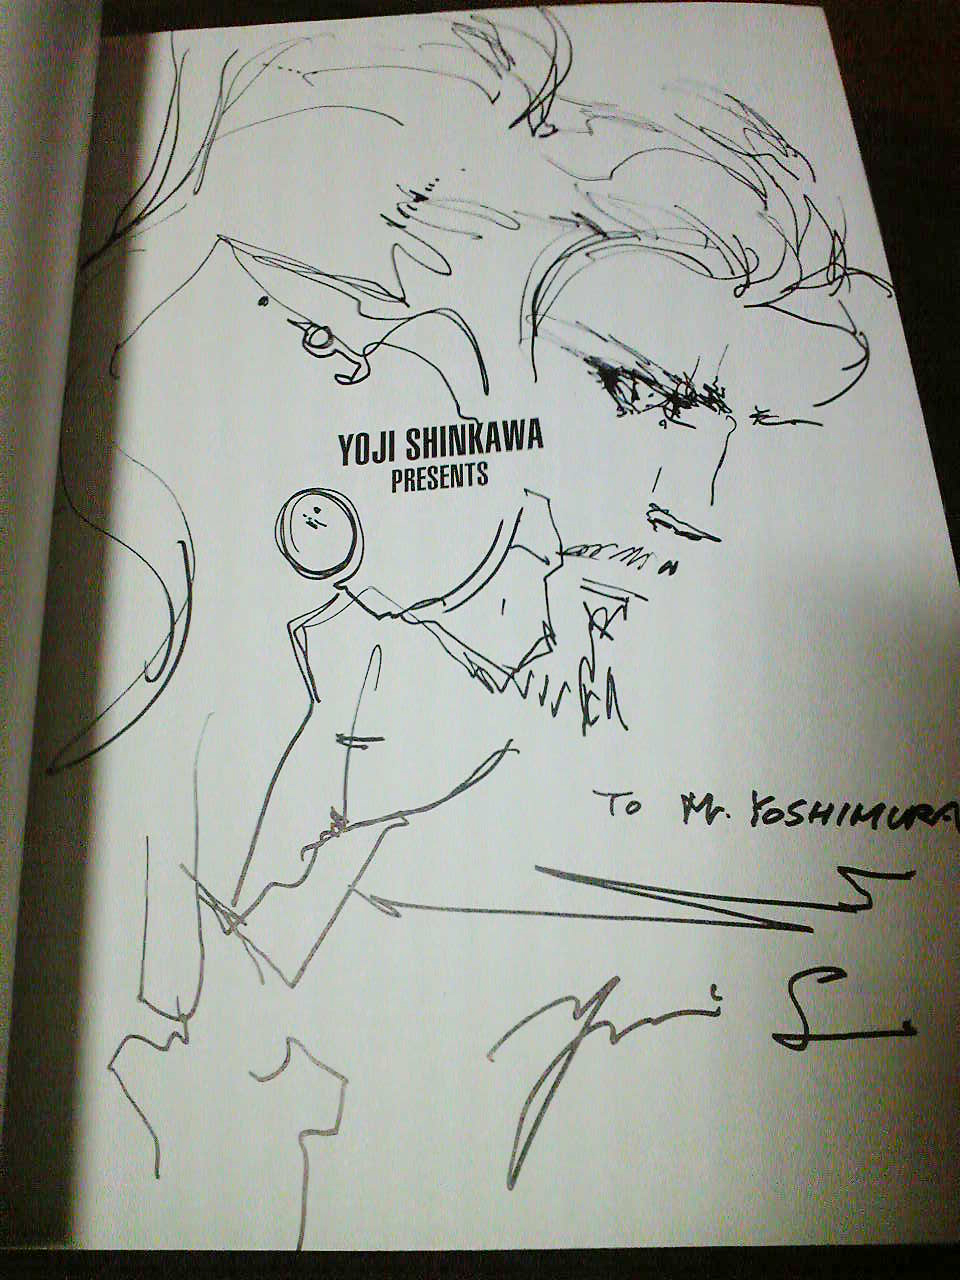 A picture of Sam that Shinkawa-san drew for me in an artbook during our meeting!